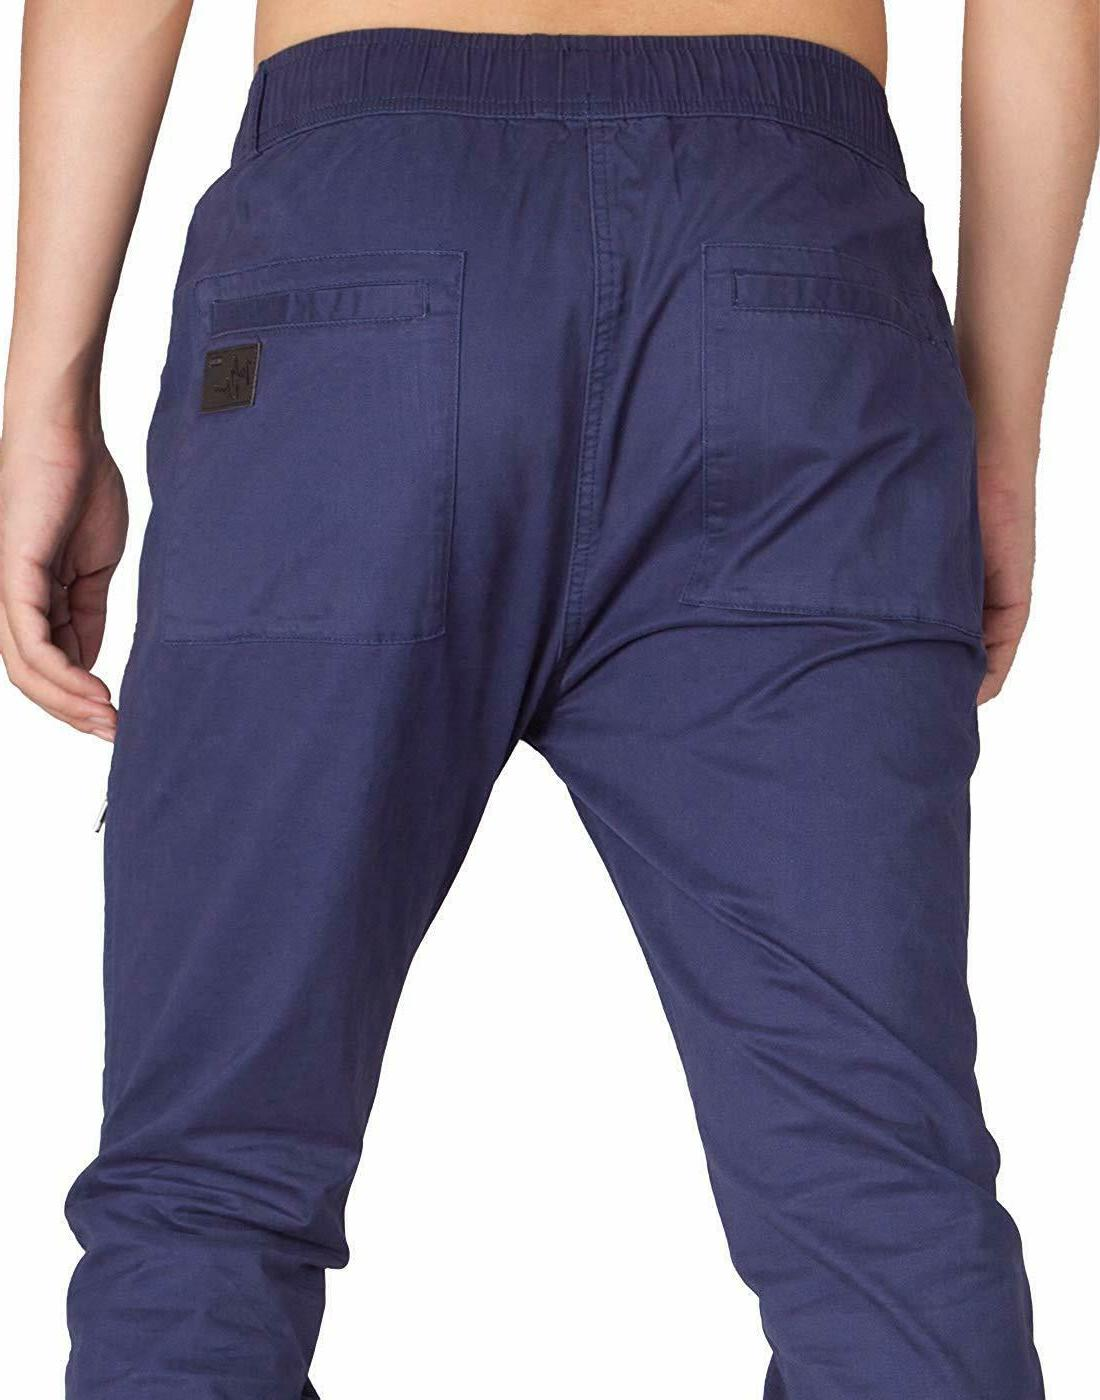 ITALY MORN Men's Cargo Pants Ankle Zipper